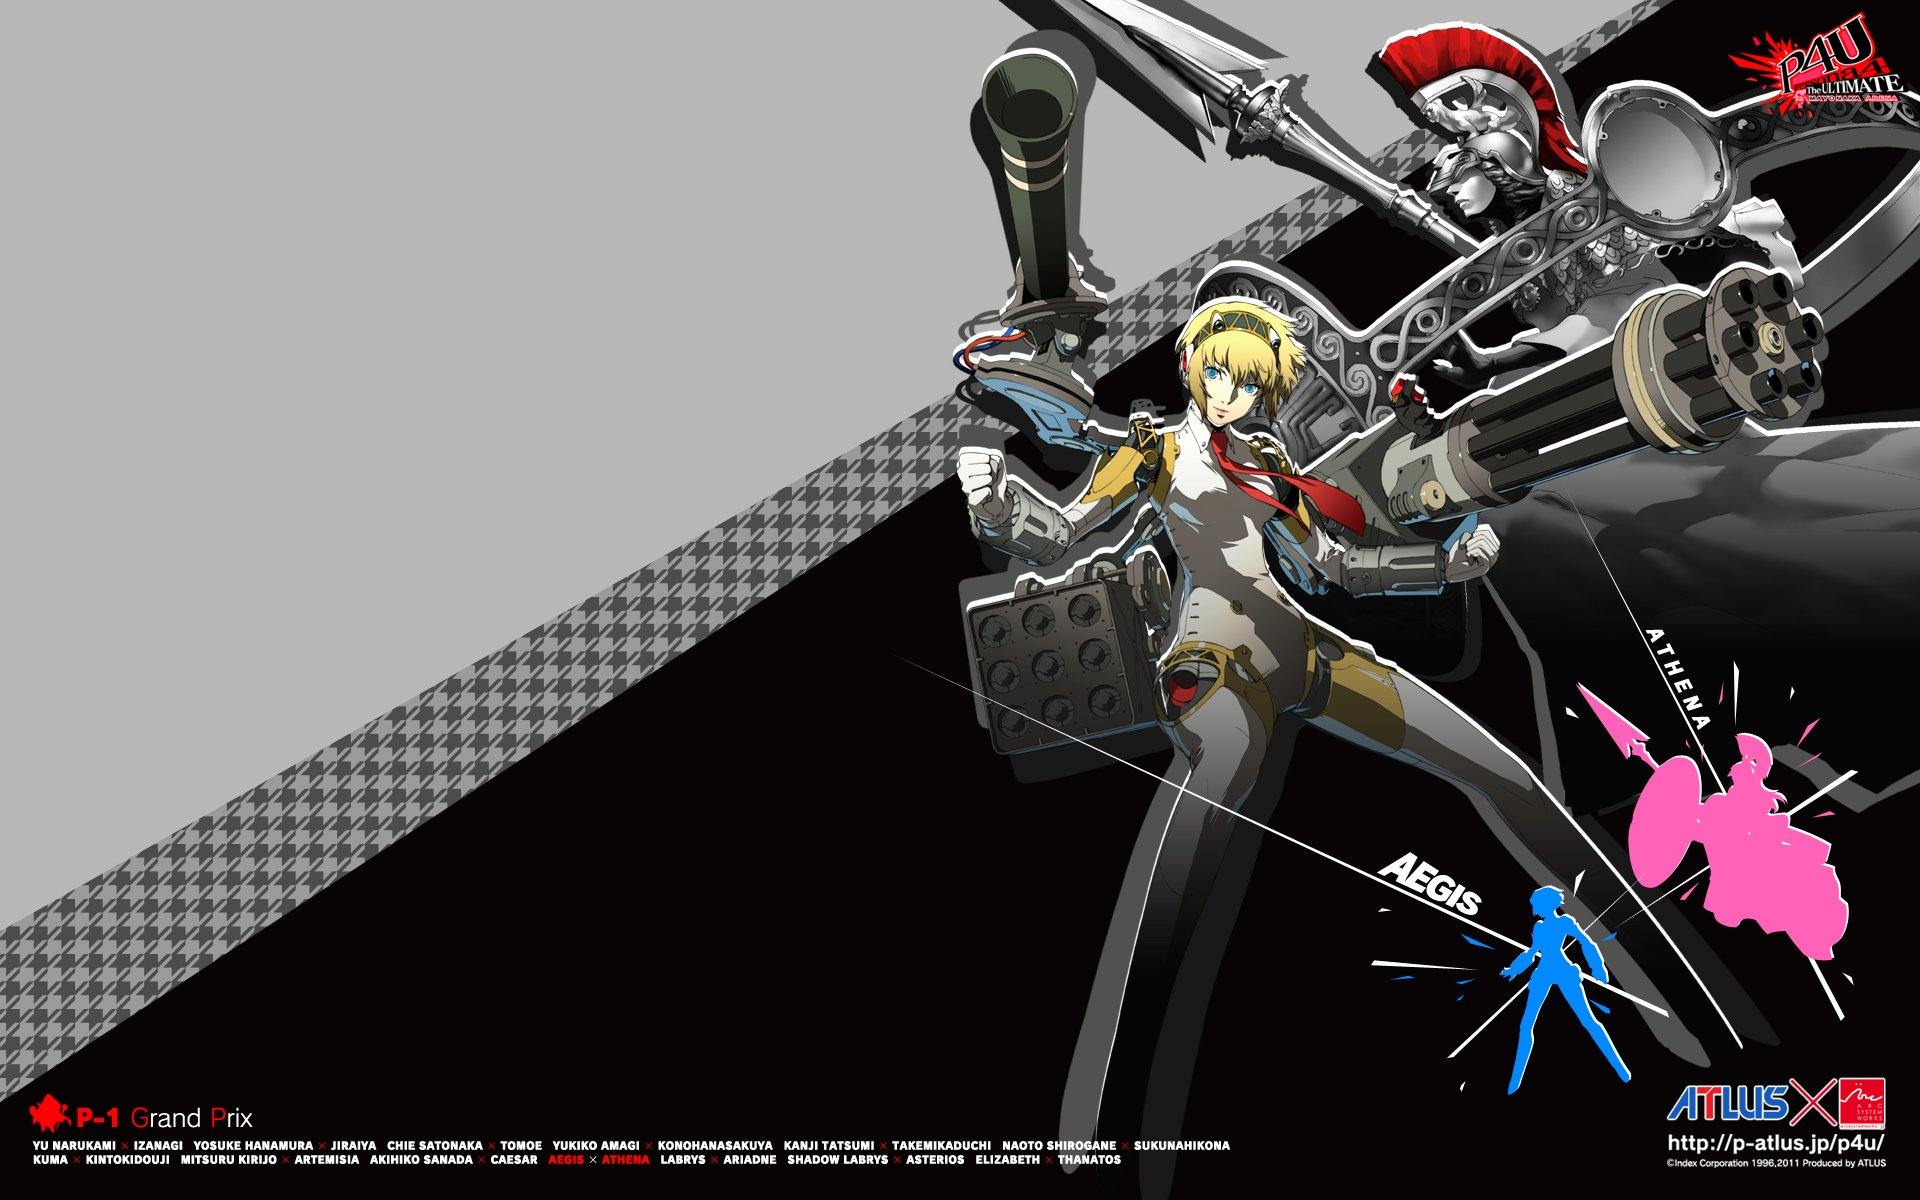 Persona 4: The Ultimate In Mayonaka Arena (Persona 4 Arena